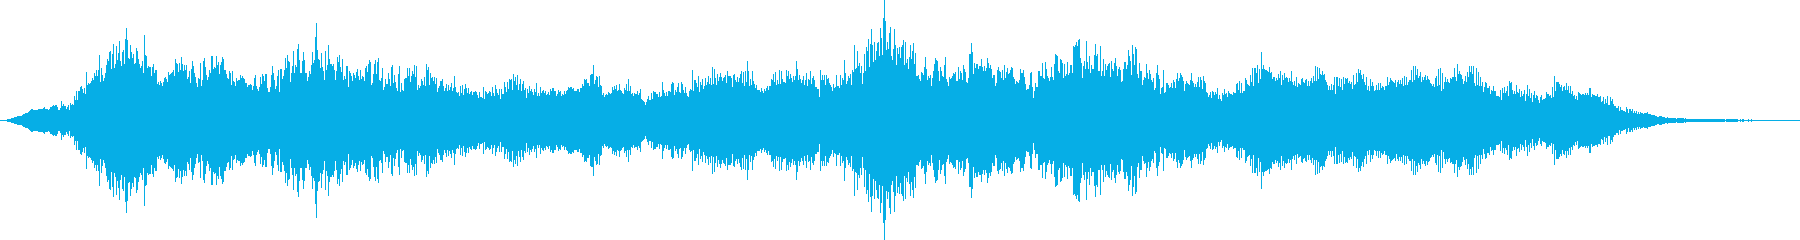 Gentle and majestic female vocal sound's reproduced waveform